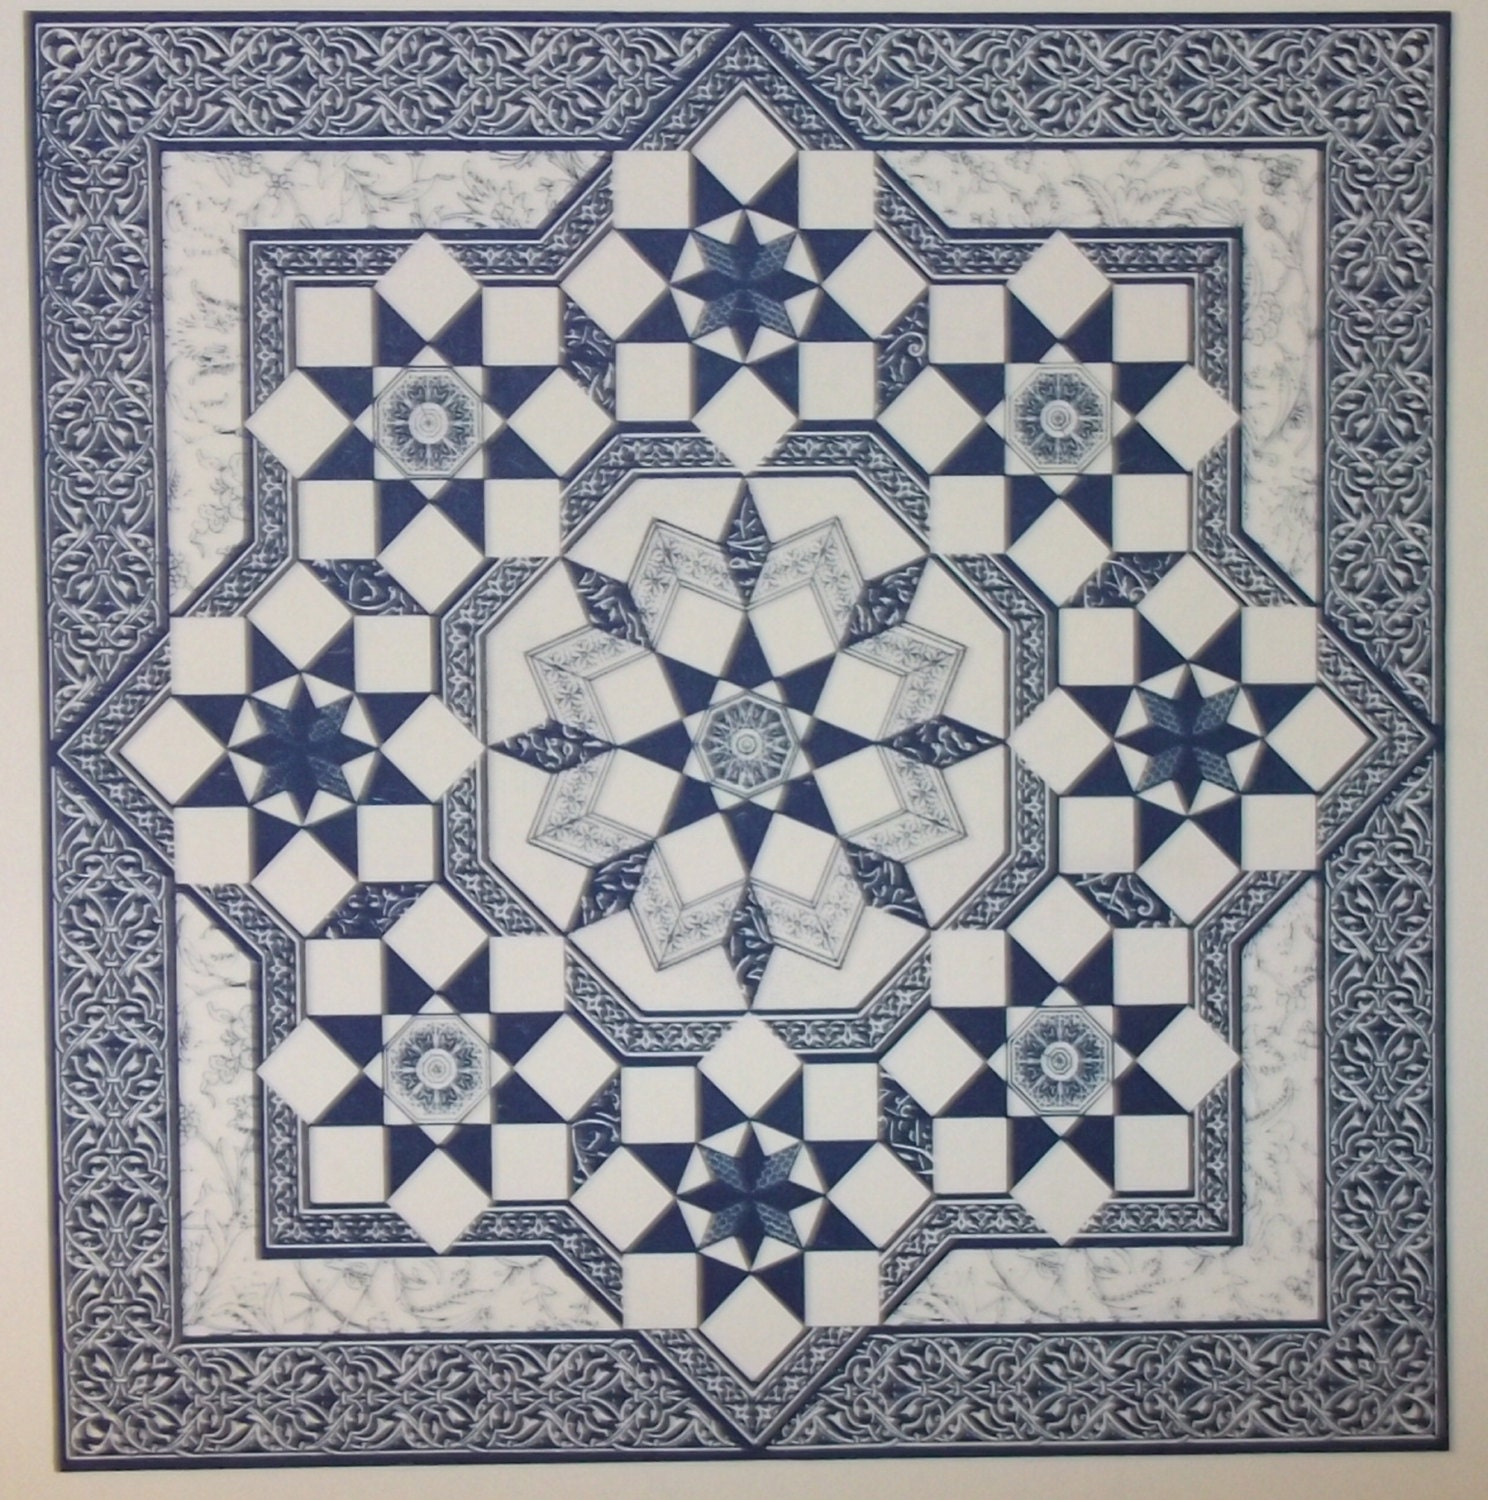 Persian Patterns: Persian Star Quilt Pattern From Mary K Ryan 1987